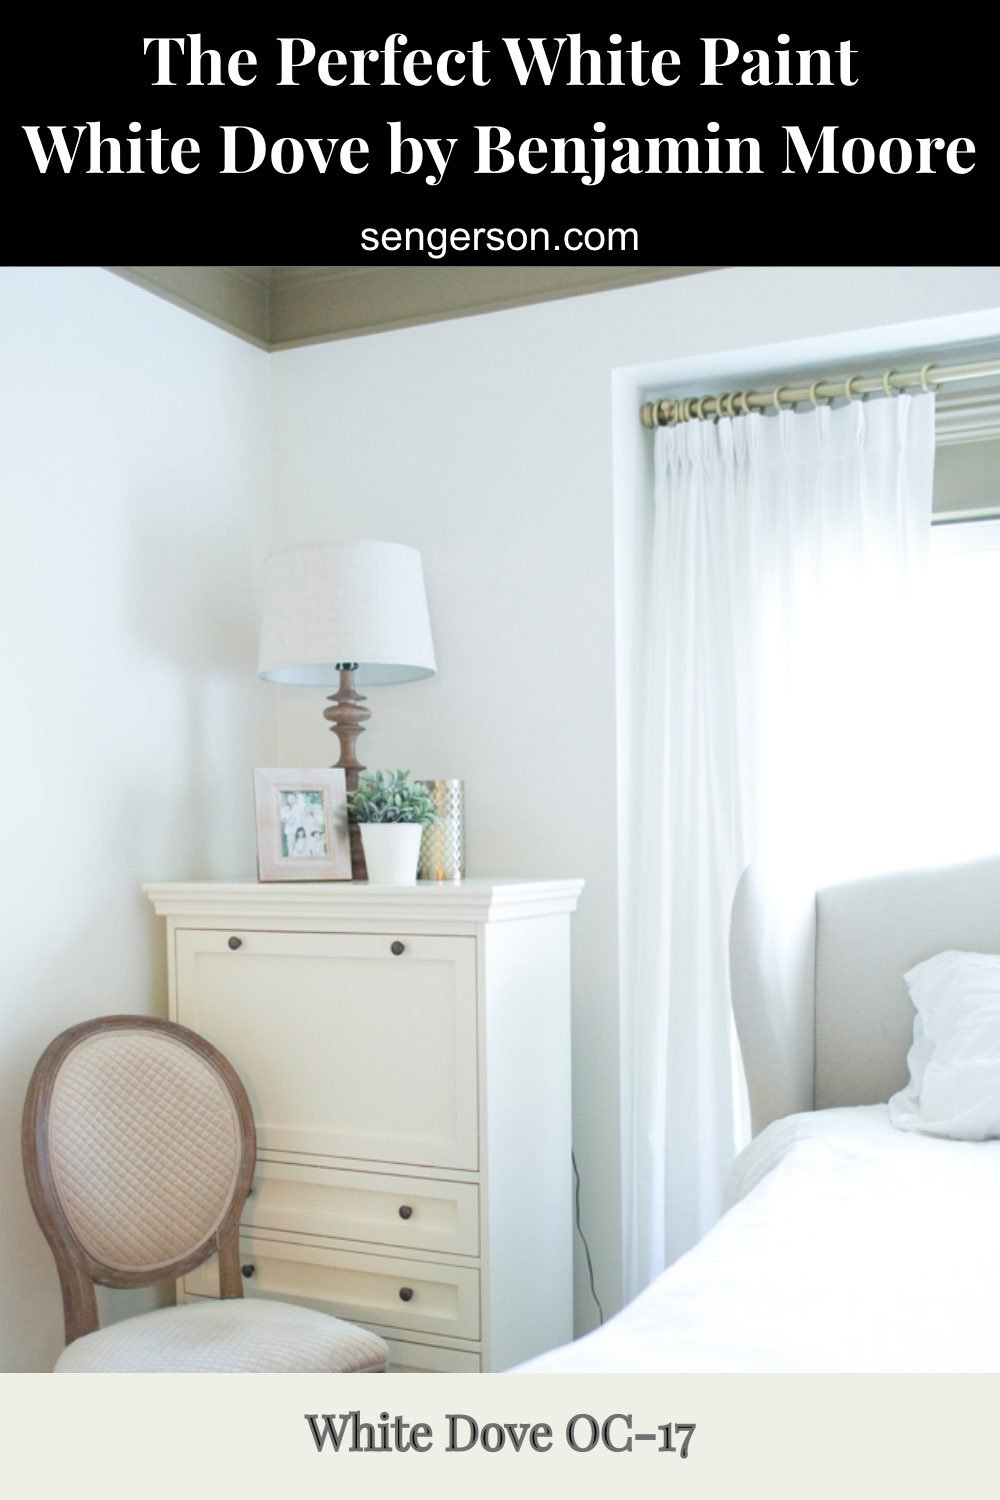 perfect white paint - white dove Benjamin Moore